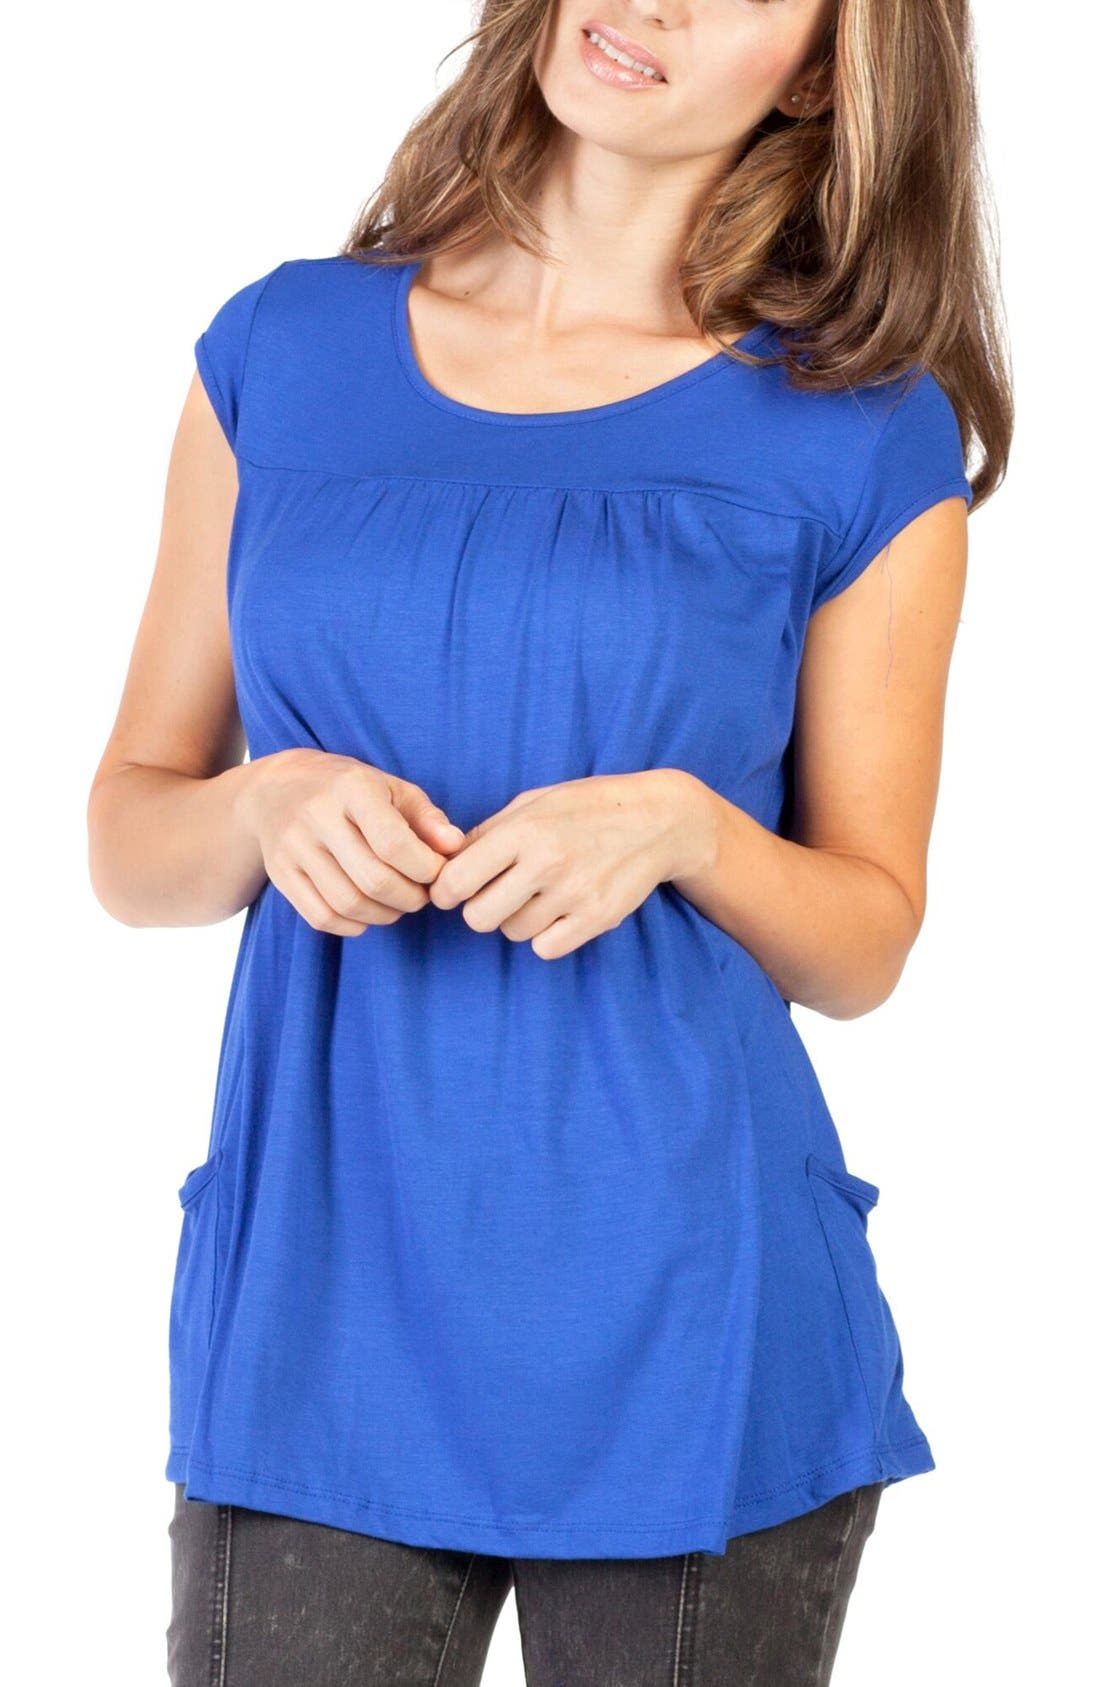 'The Babydoll' Maternity Nursing Top,                         Main,                         color, BLUE